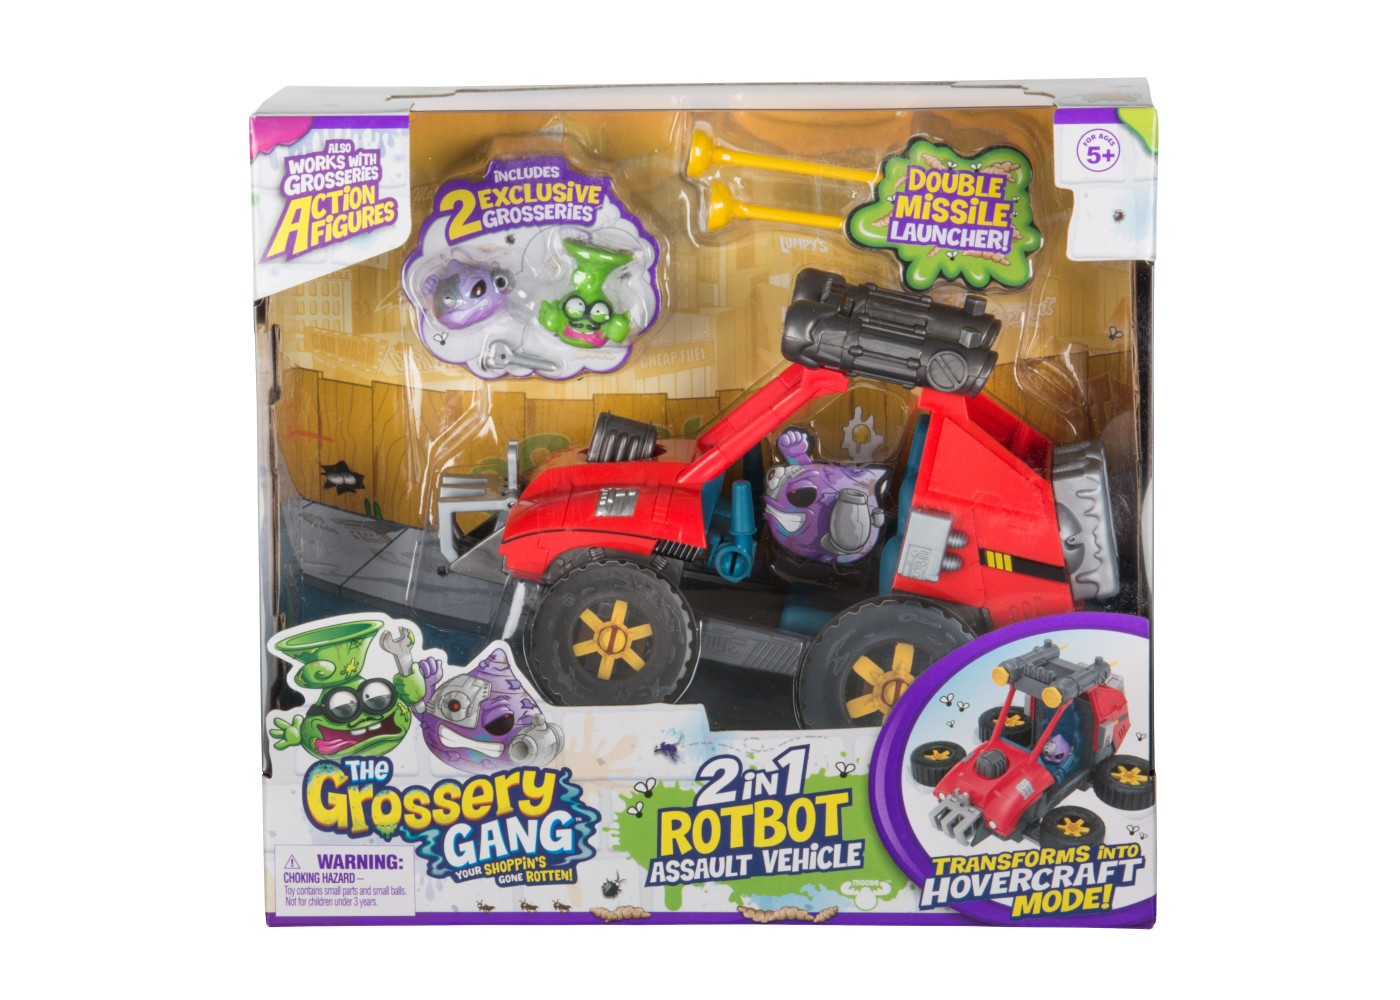 2 in 1 Rotbot Assault Vehicle